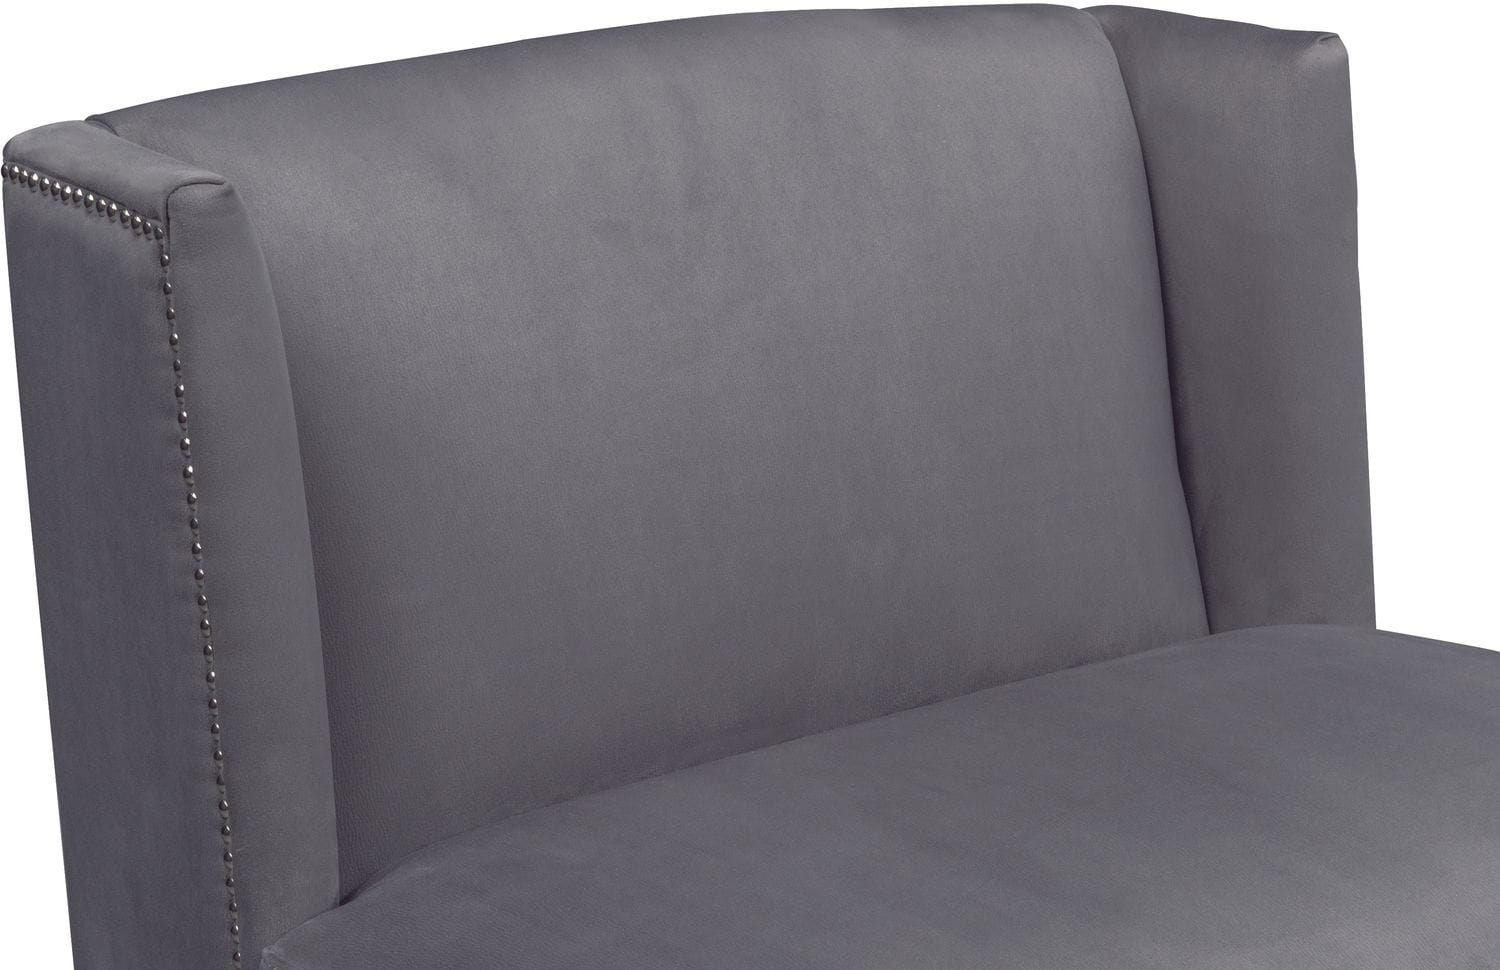 click to change image. torrance accent chair  dark gray  value city furniture and